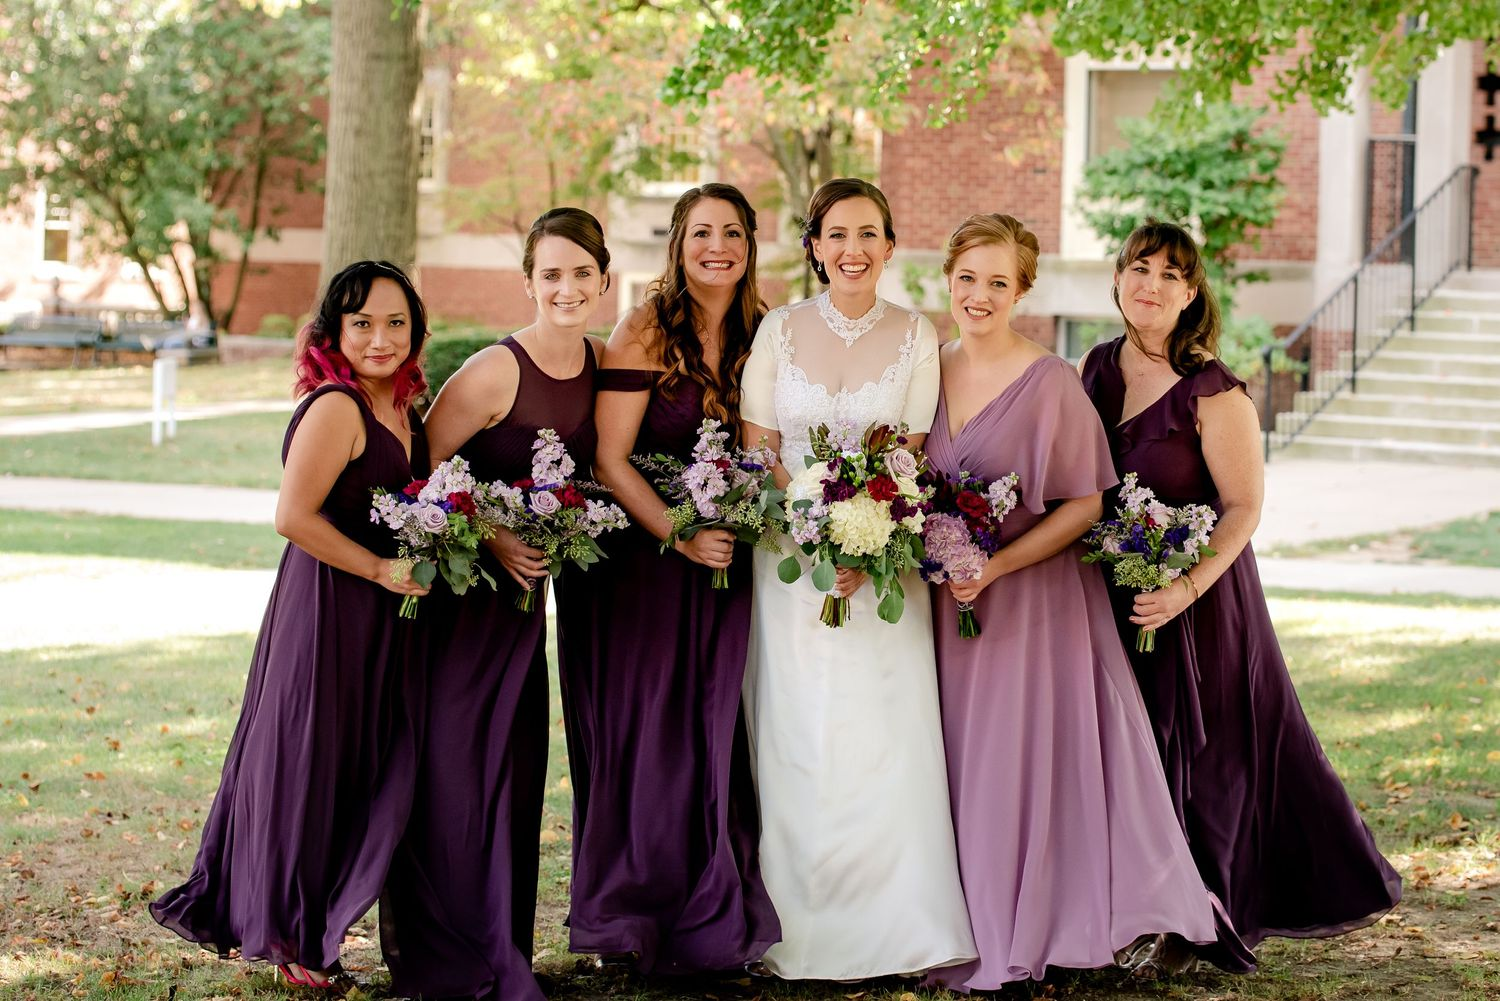 bridal party in pittsburgh with bridesmaids wearing maroon and purple holding bouqets